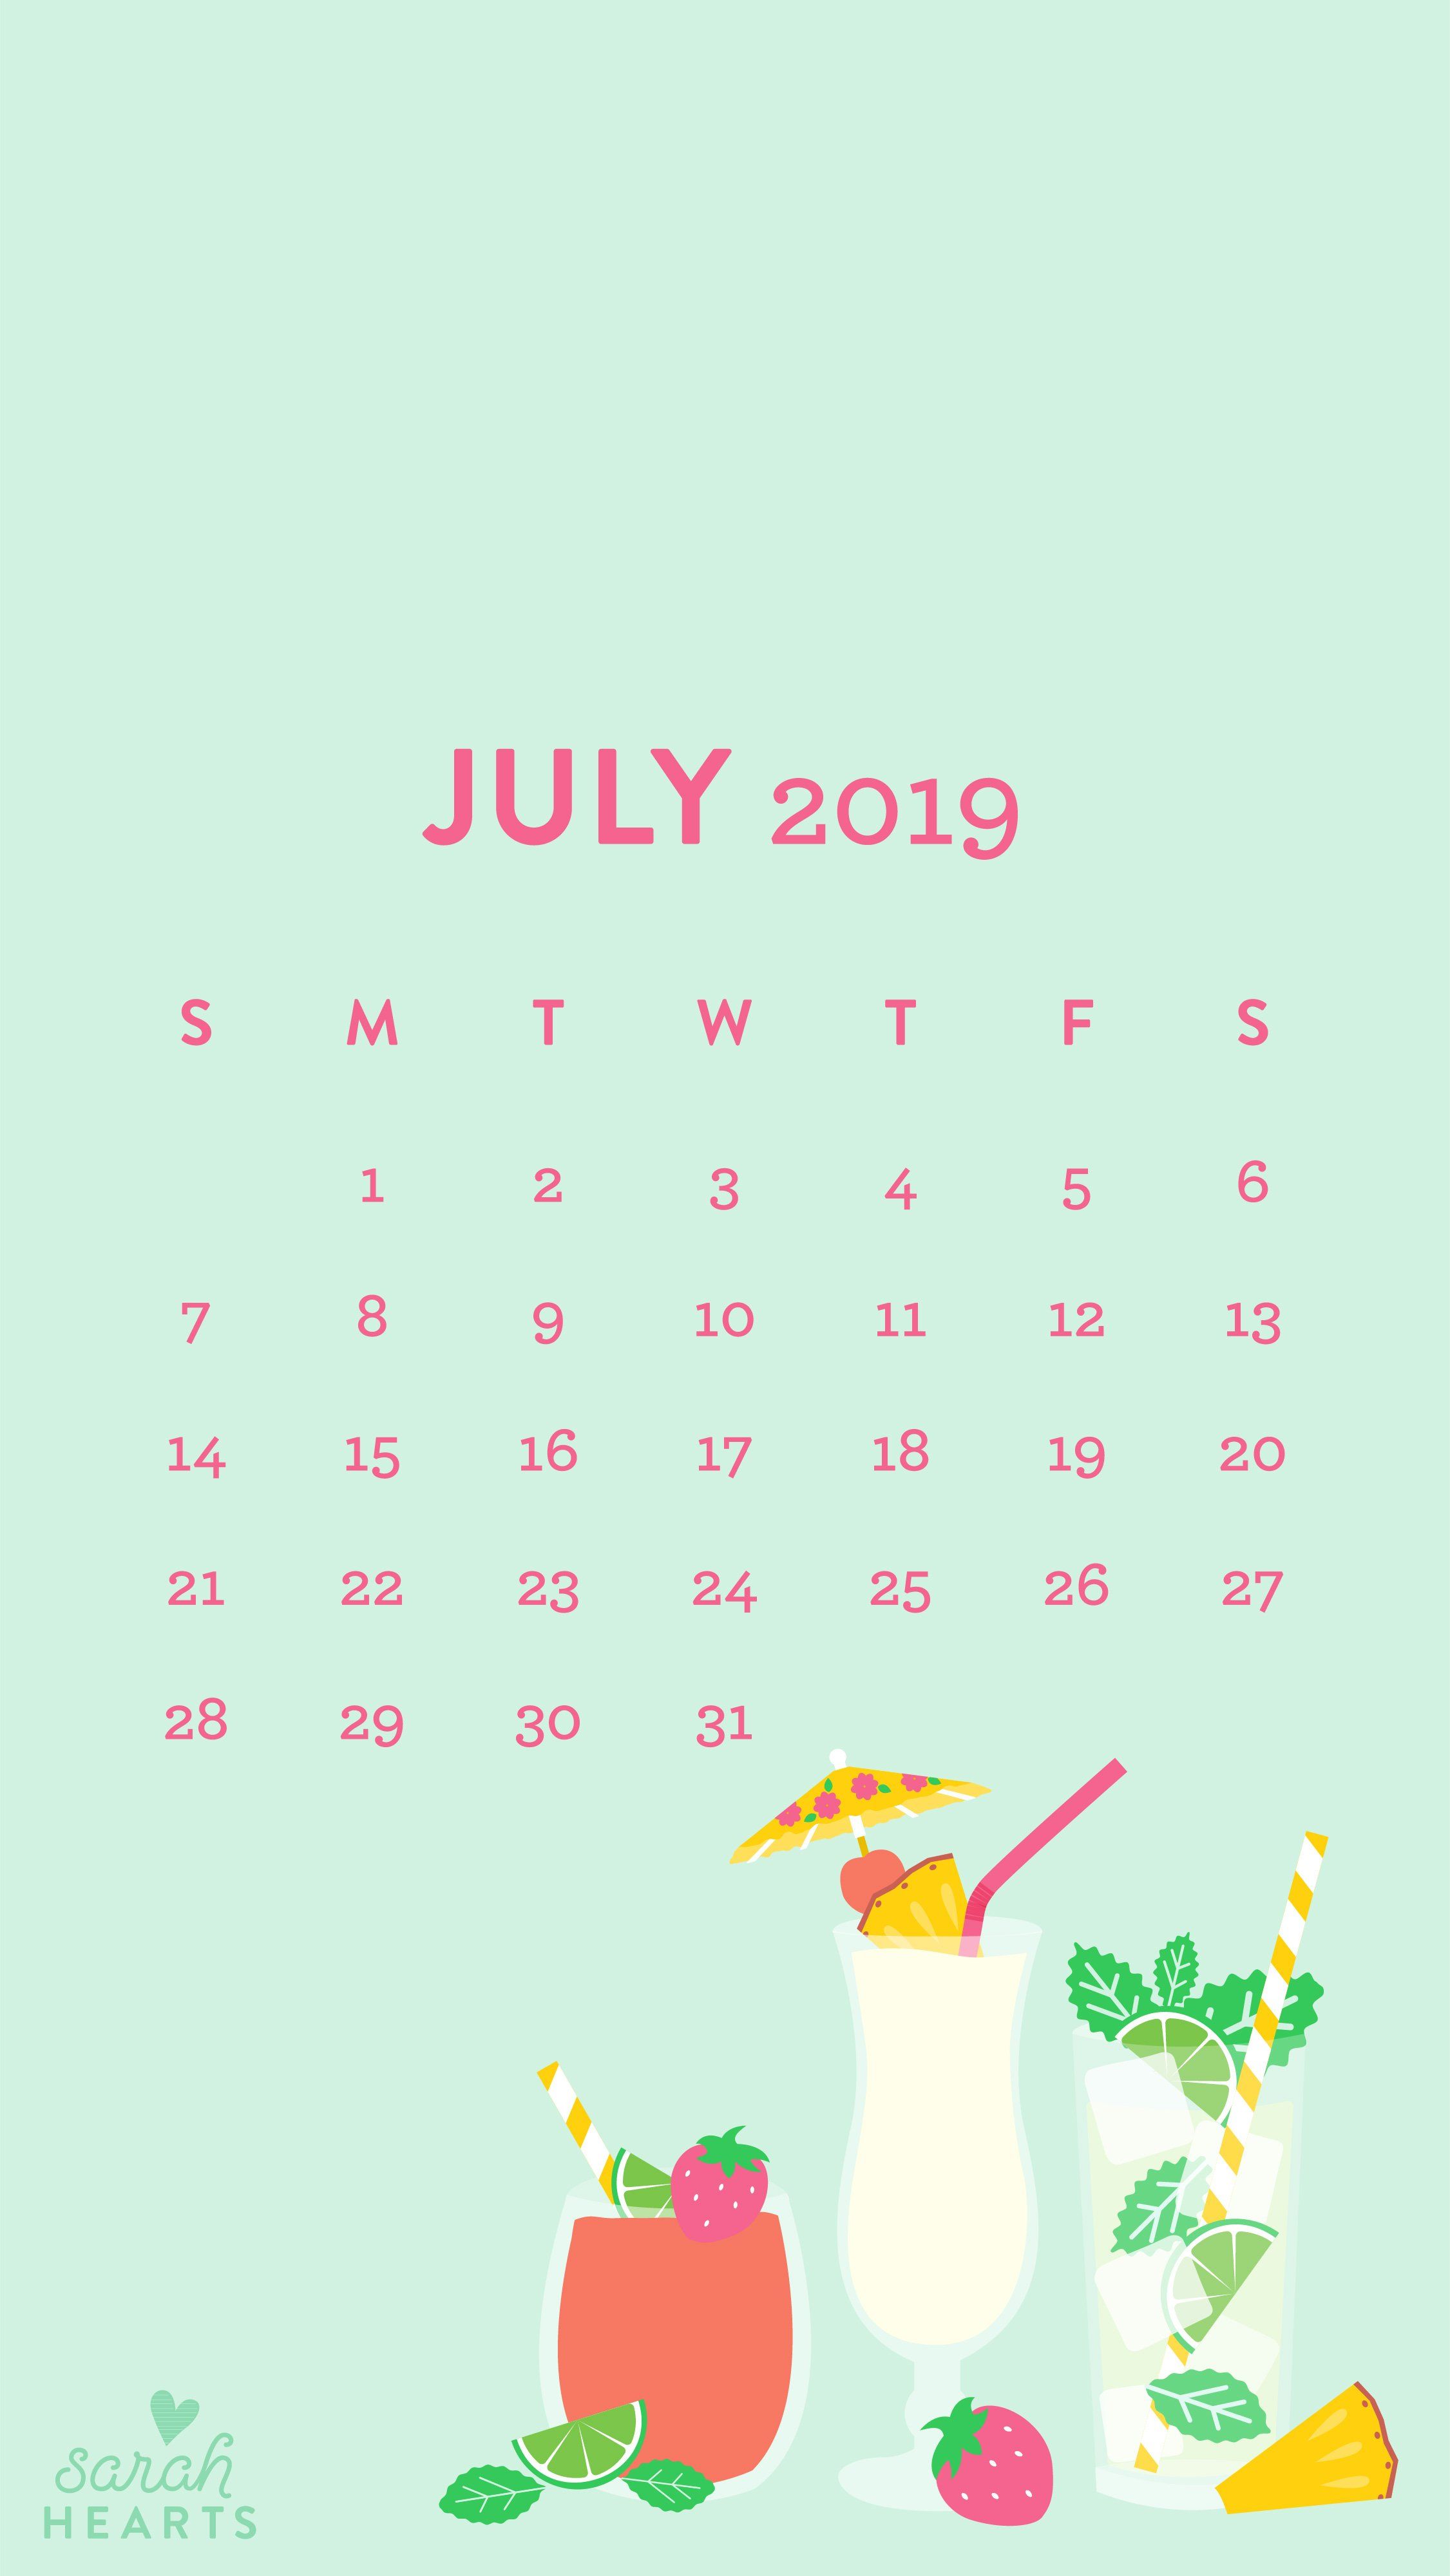 July 2019 Summer Drinks Calendar Wallpaper – Sarah Hearts July 8 2019 Calendar